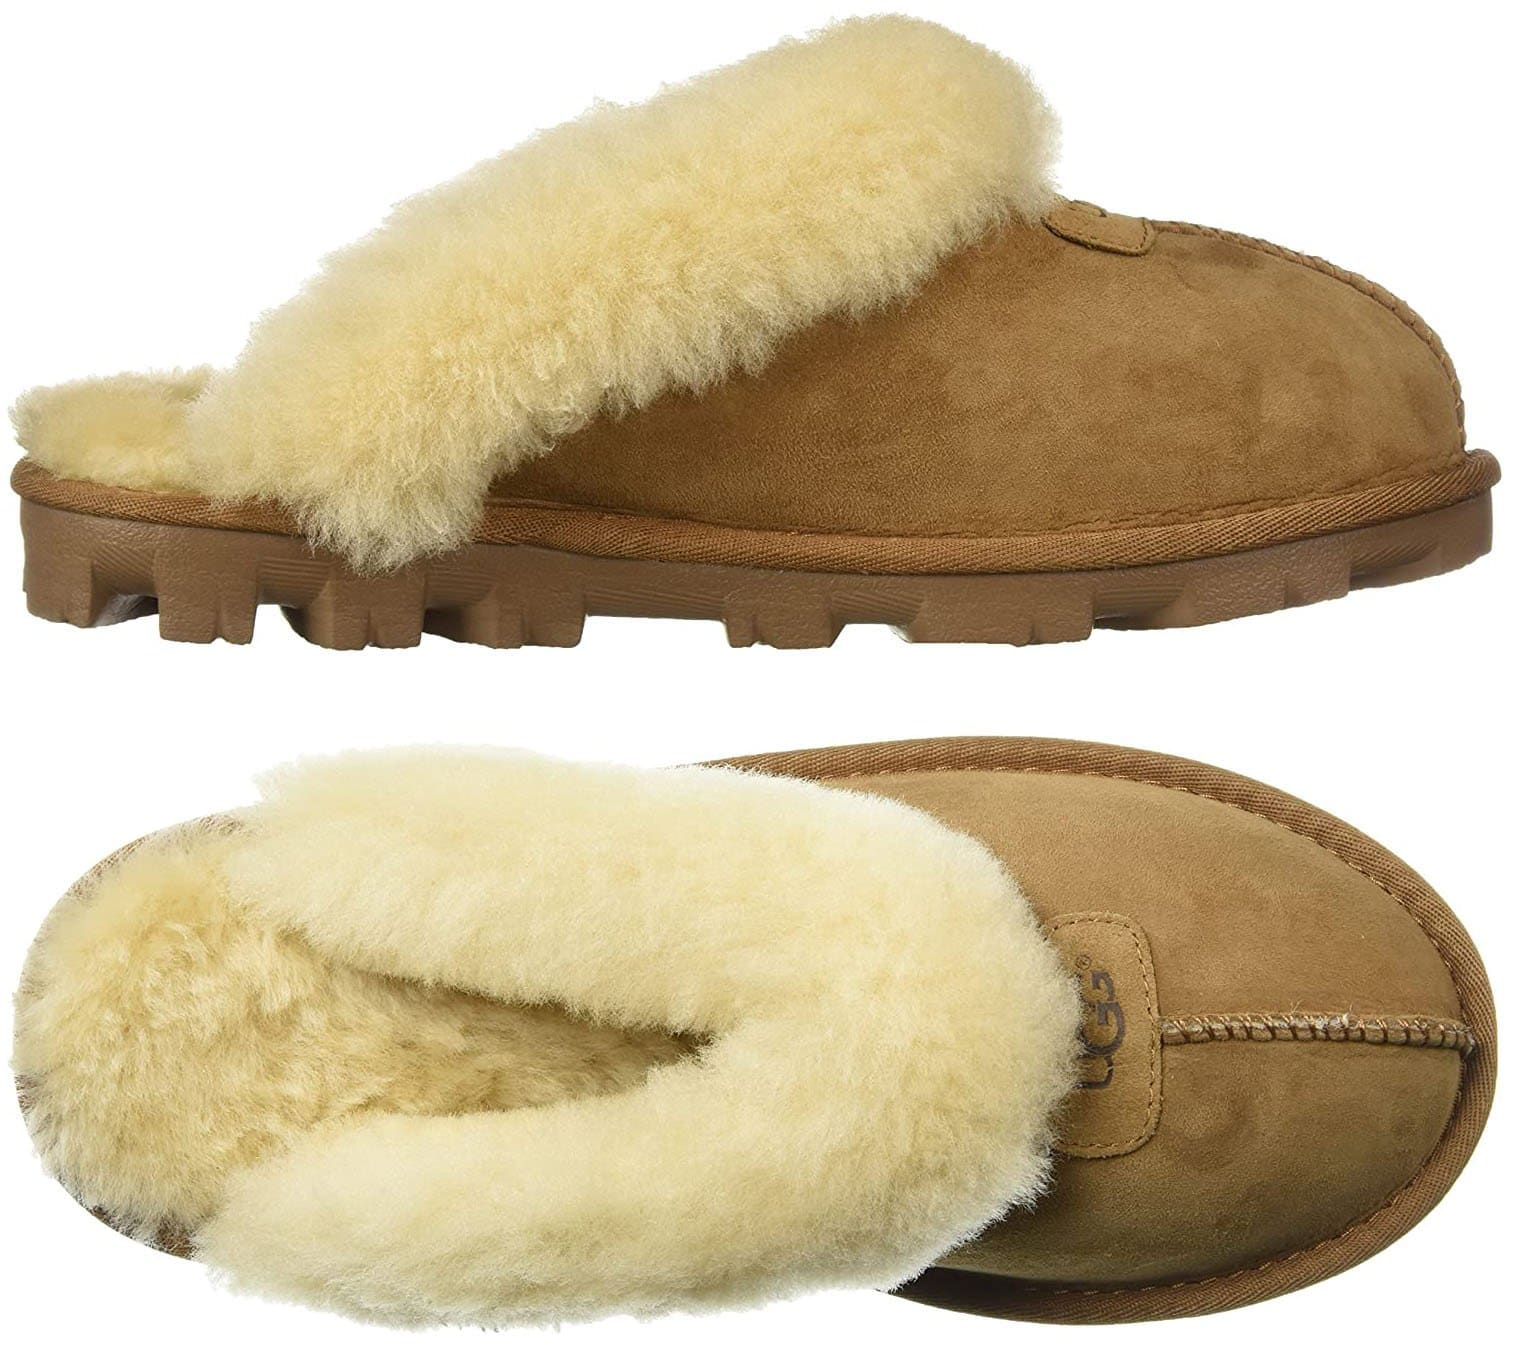 The Coquette is one of UGG's most popular slipper silhouettes featuring a Twinface sheepskin upper and a sheepskin insole